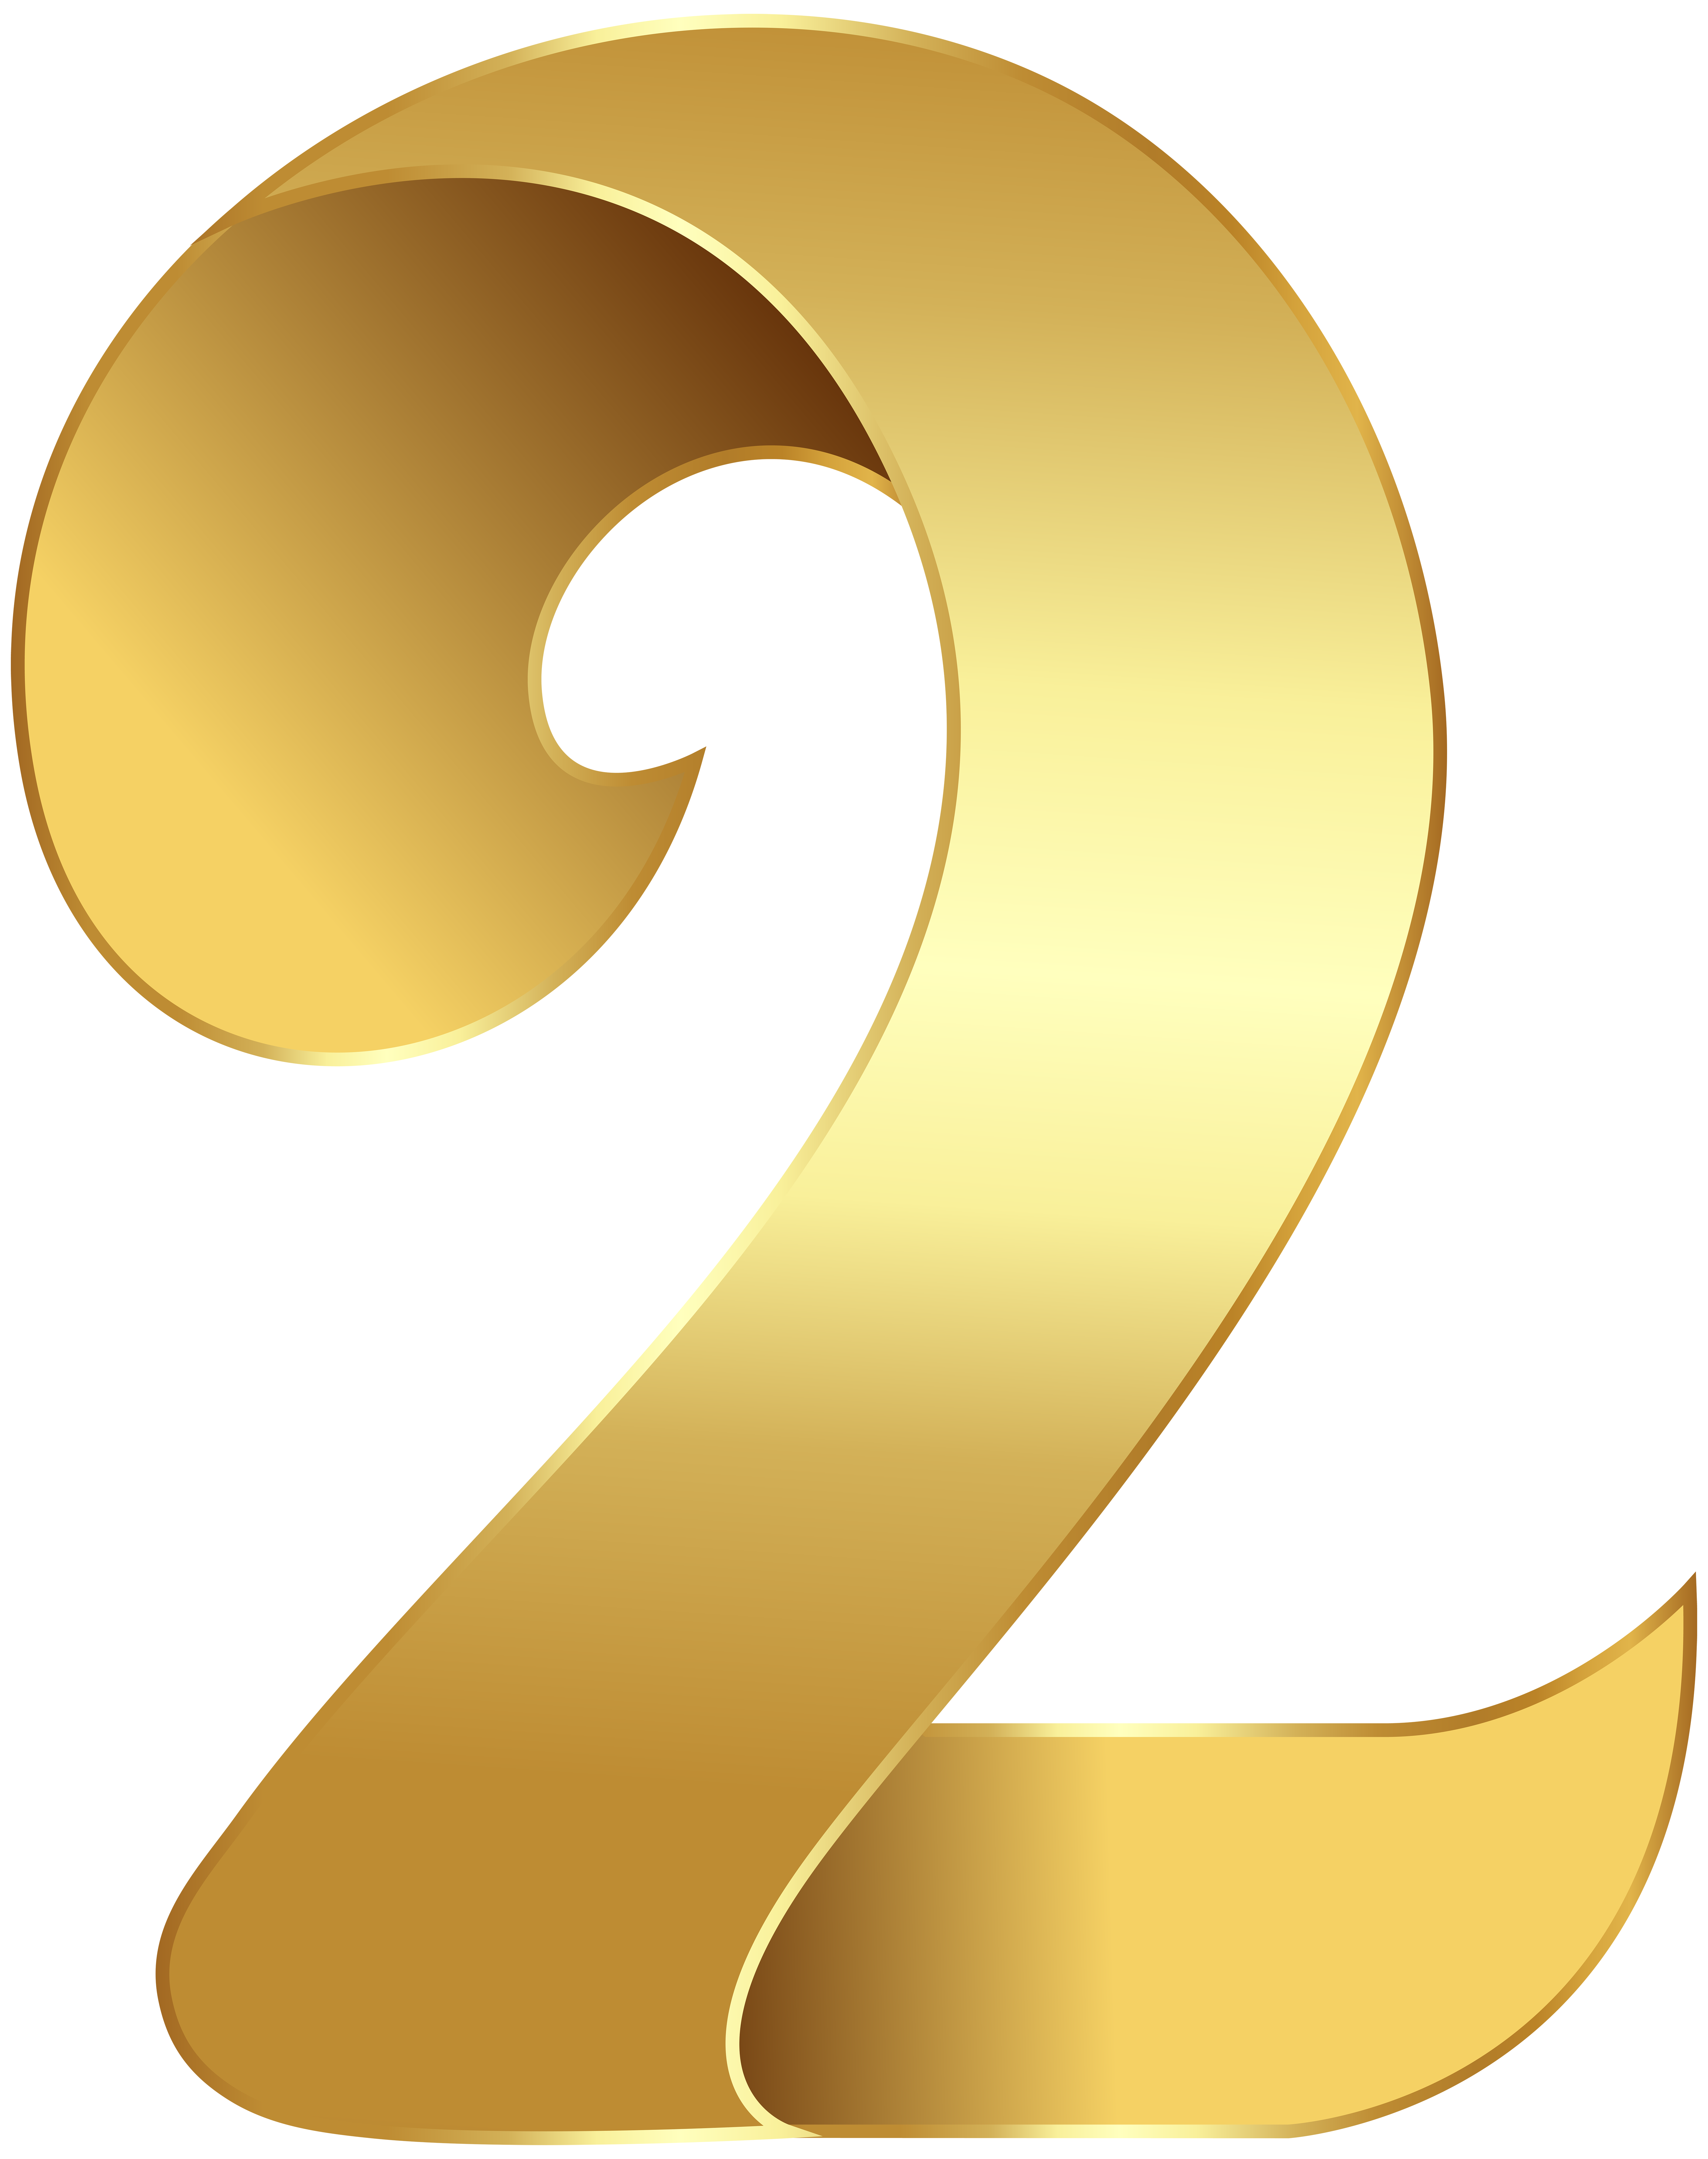 Golden Number Two Transparent Png Clip Art Image Gallery Yopriceville High Quality Images And Transparent Png Free Clipa Art Images Golden Number Clip Art